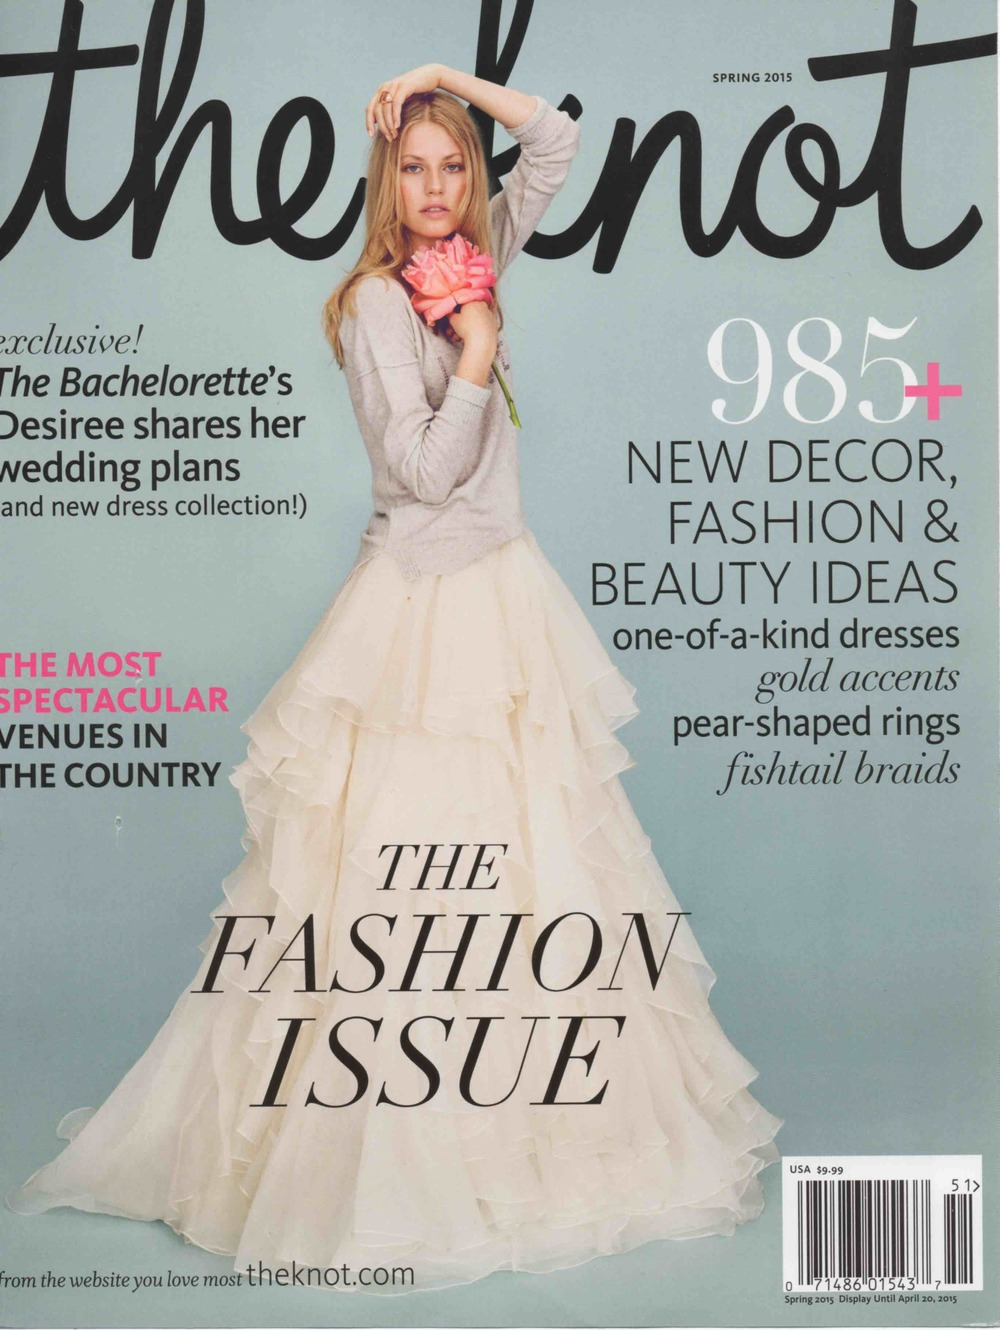 The Knot Spring 2015 Cover.jpg